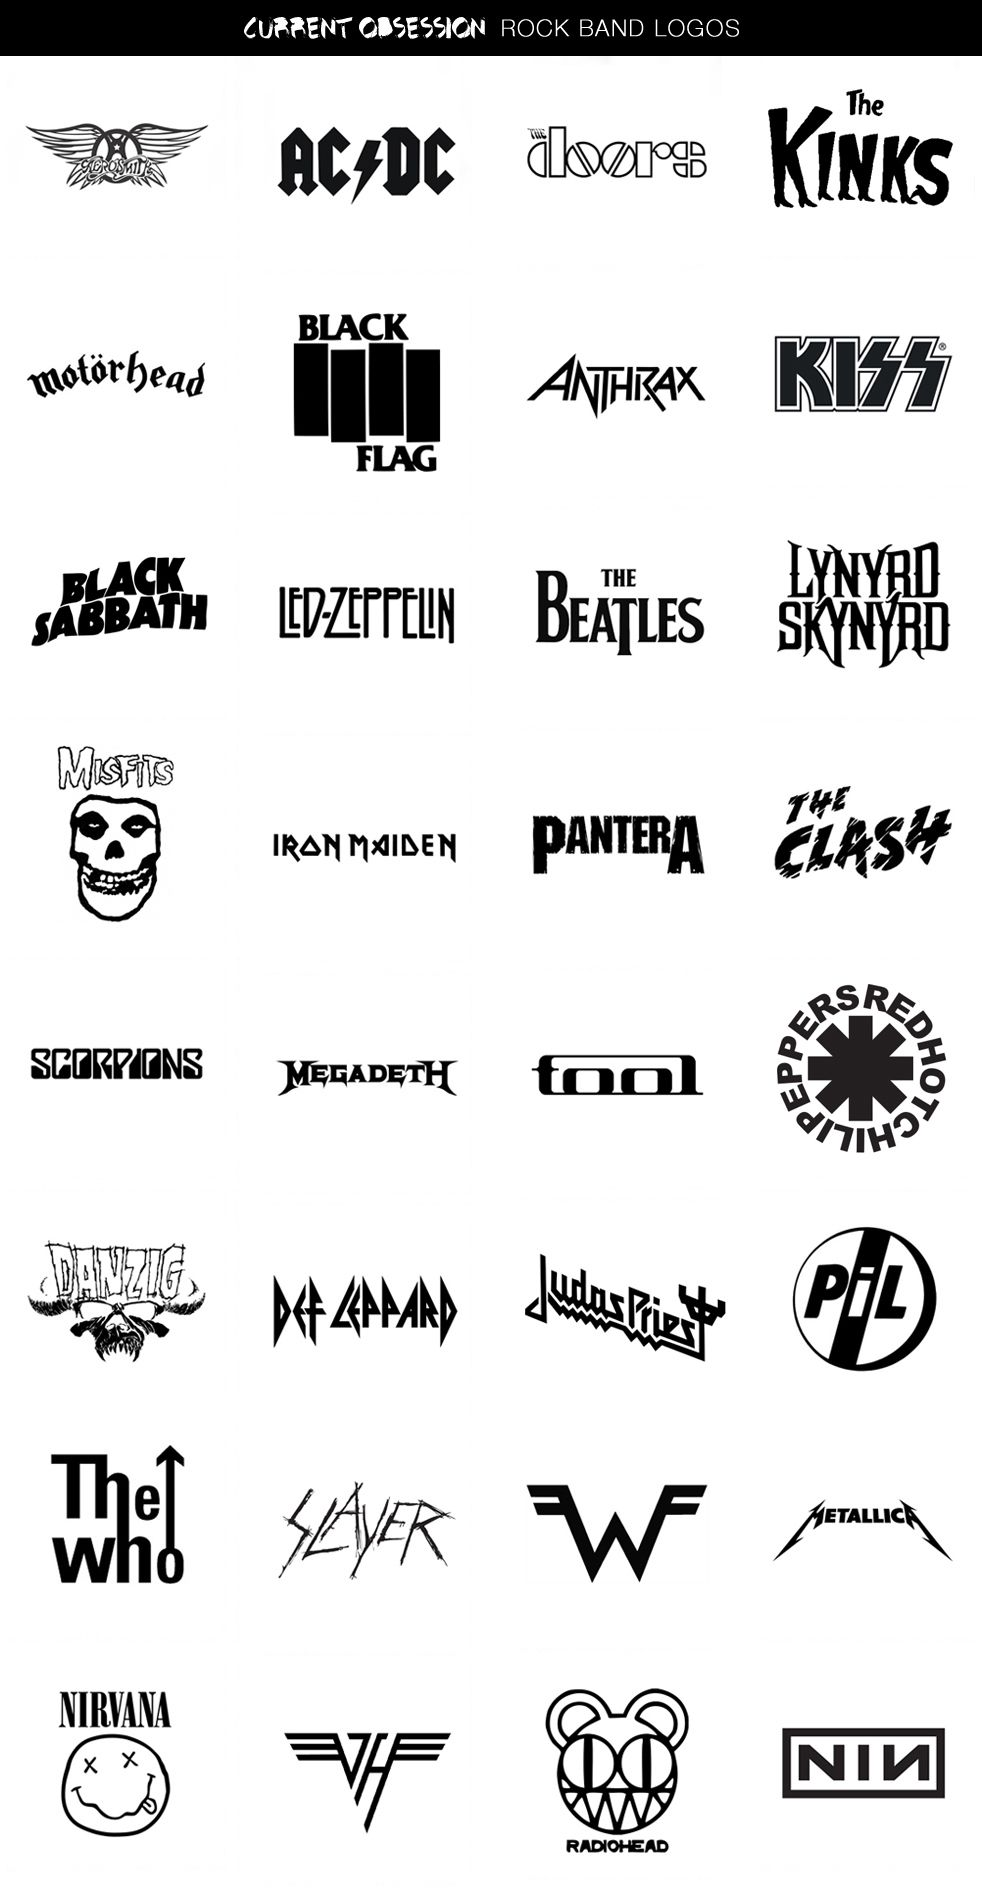 Current Obsession Rock Band Logos In 2018 Music Pinterest